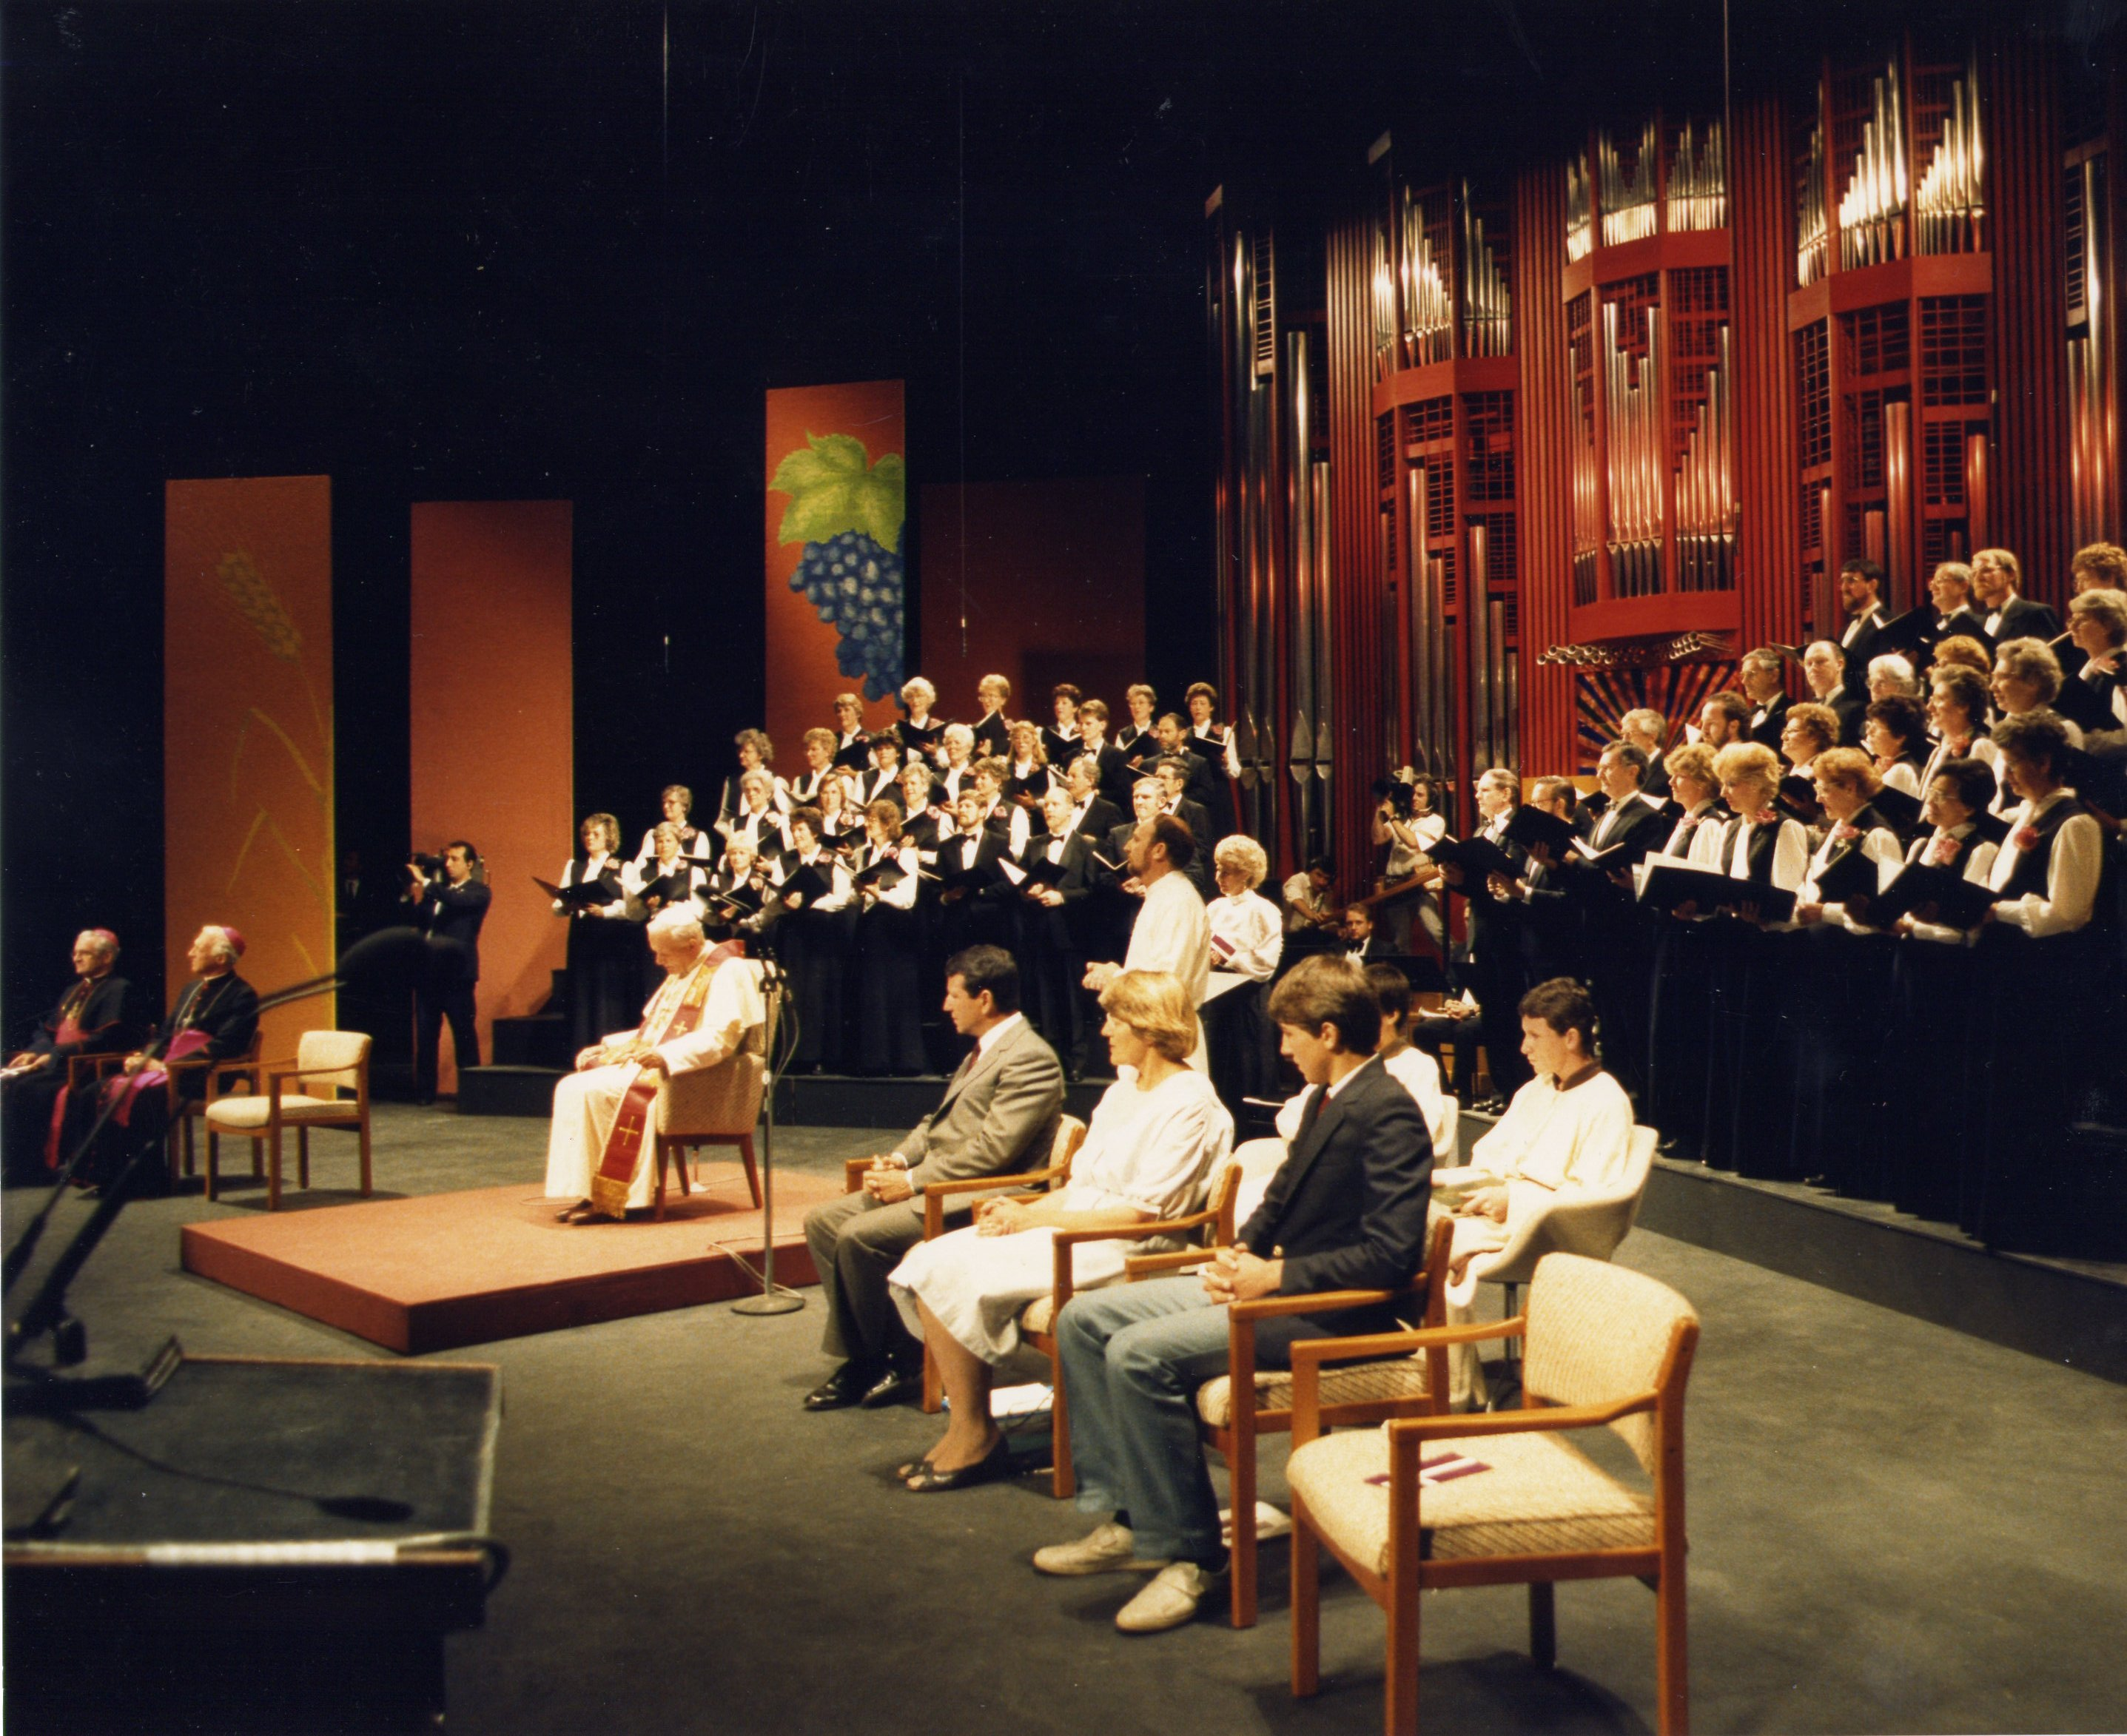 cathy weber tony ryan media murray park singers directed by cathy weber adelaide festival theatre during the 1986